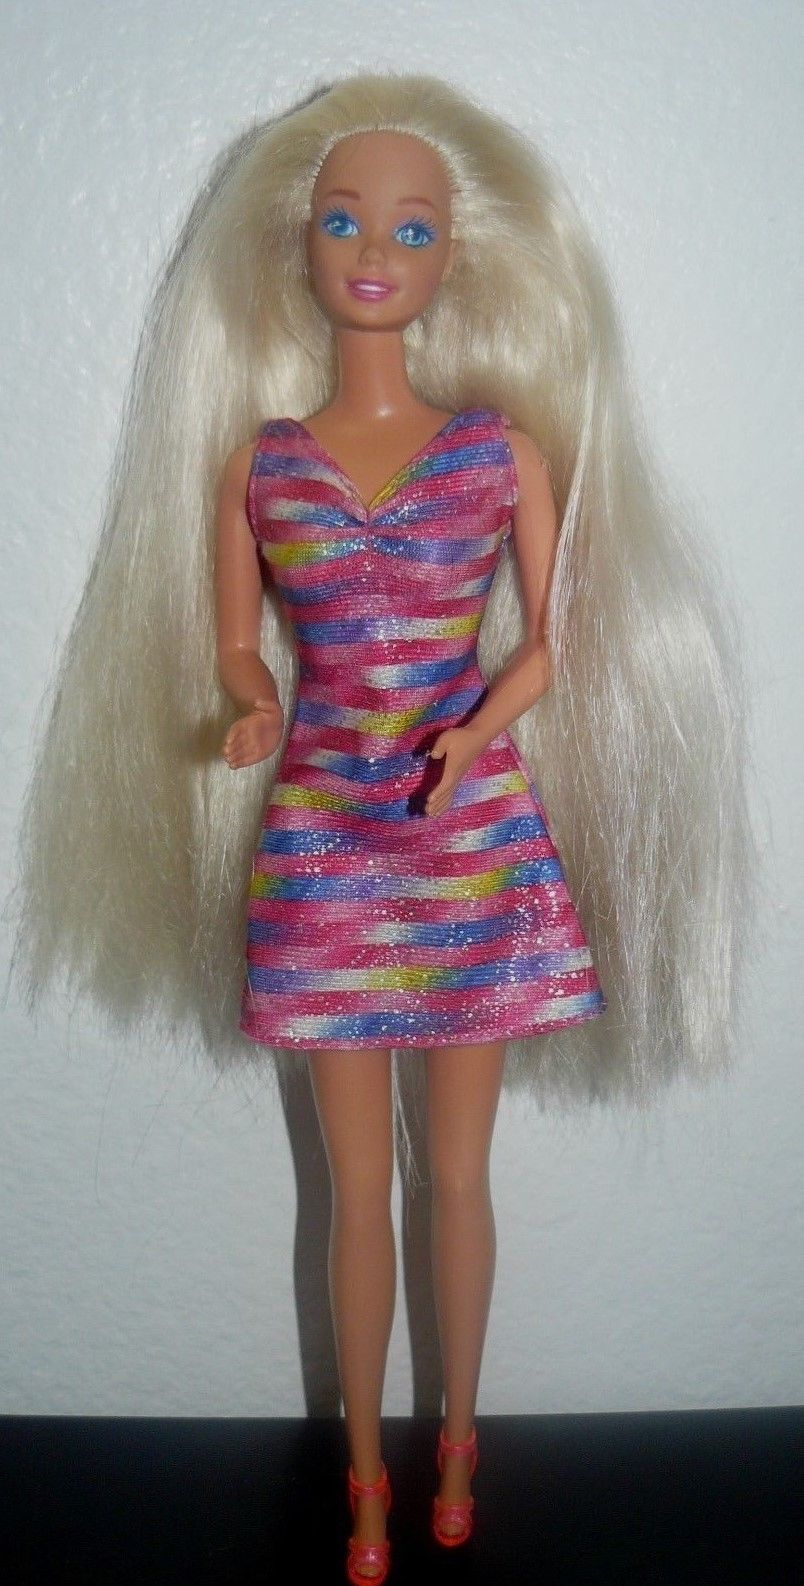 c27a54c0ebd7 S l1600. S l1600. Previous. Mattel 1980 s Blue eyes Long Blonde Barbie Doll  in stripes dress and shoes